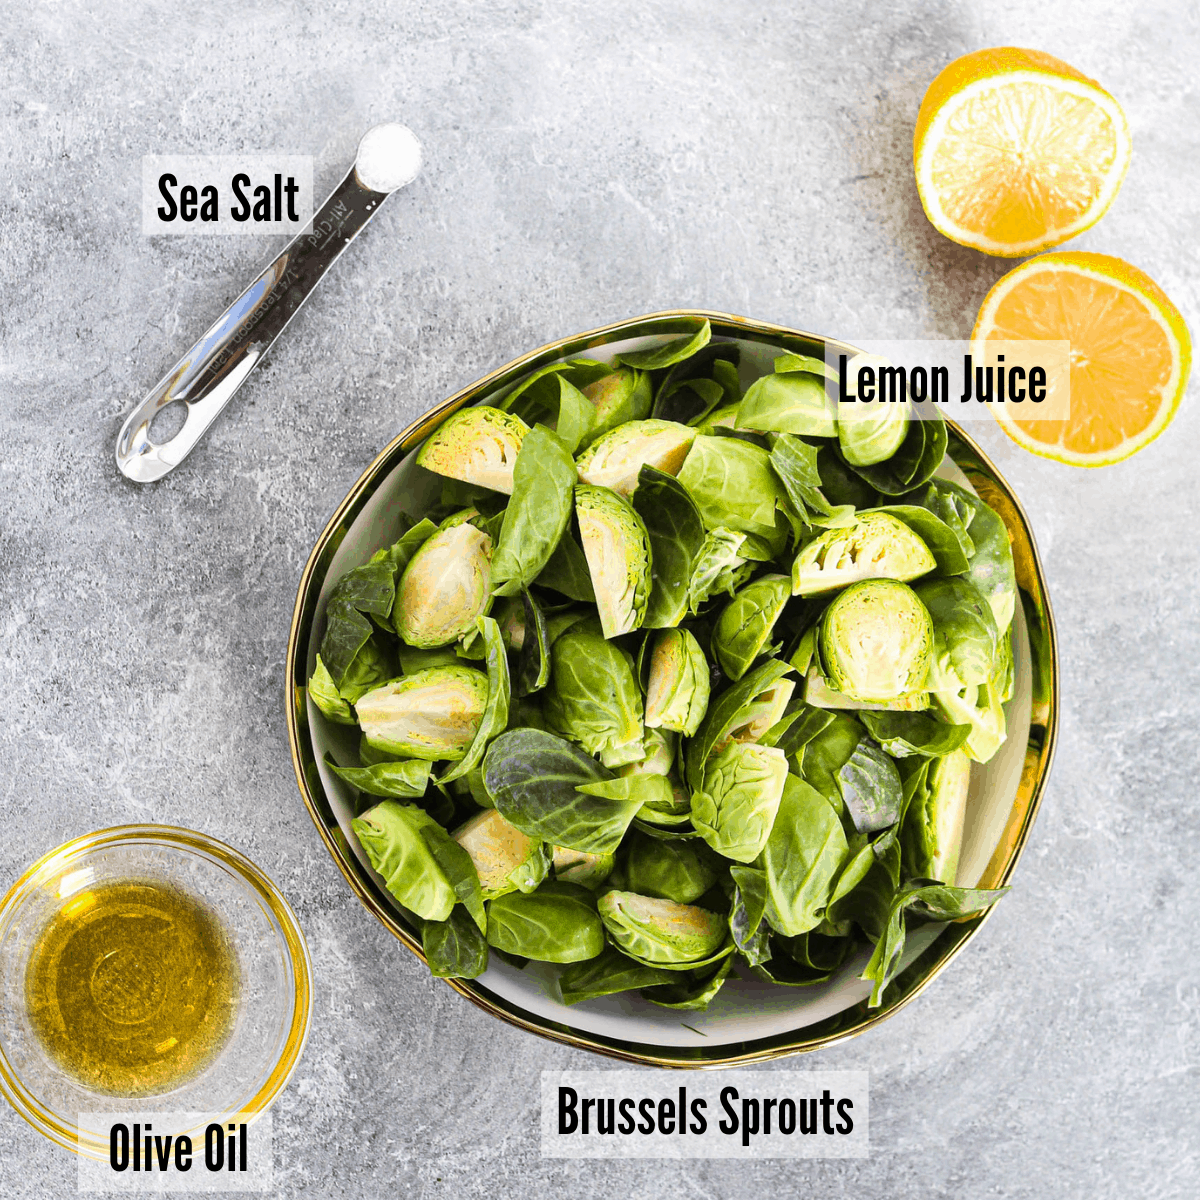 All the ingredients for air fryer brussel sprouts: salt, olive oil, lemon juice, and brussel sprouts